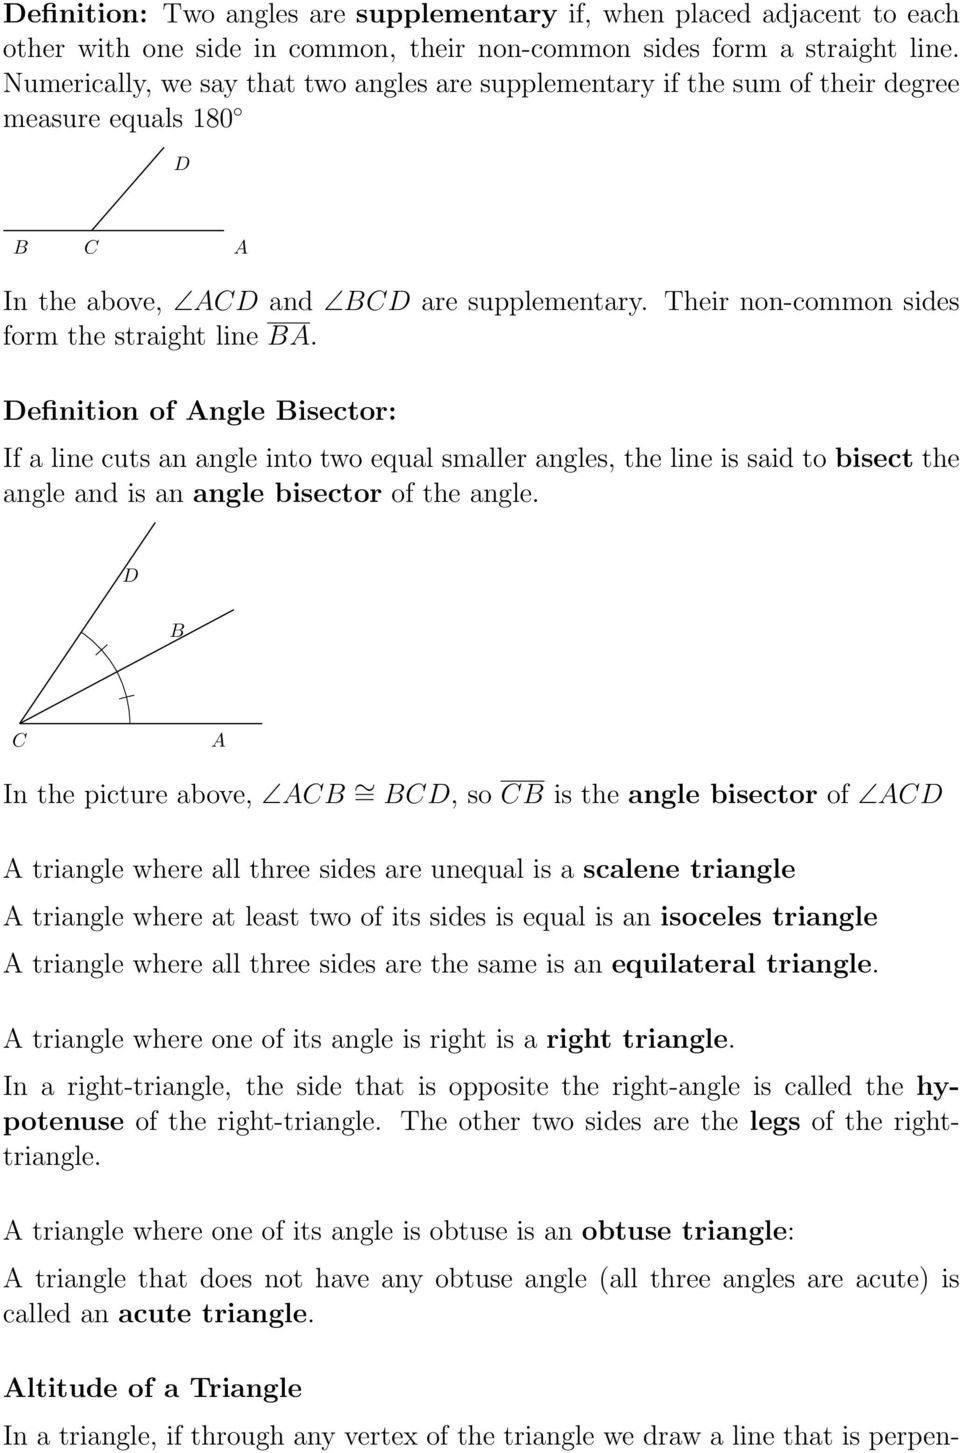 efinition of ngle isector: If a line cuts an angle into two equal smaller angles, the line is said to bisect the angle and is an angle bisector of the angle.